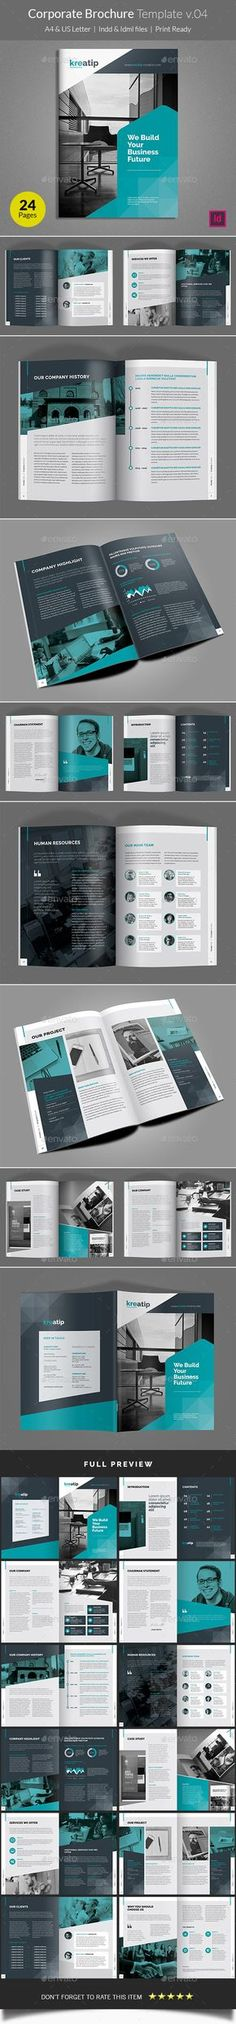 Corporate E-book Template Vol5 Template, Brochures and - technology brochure template